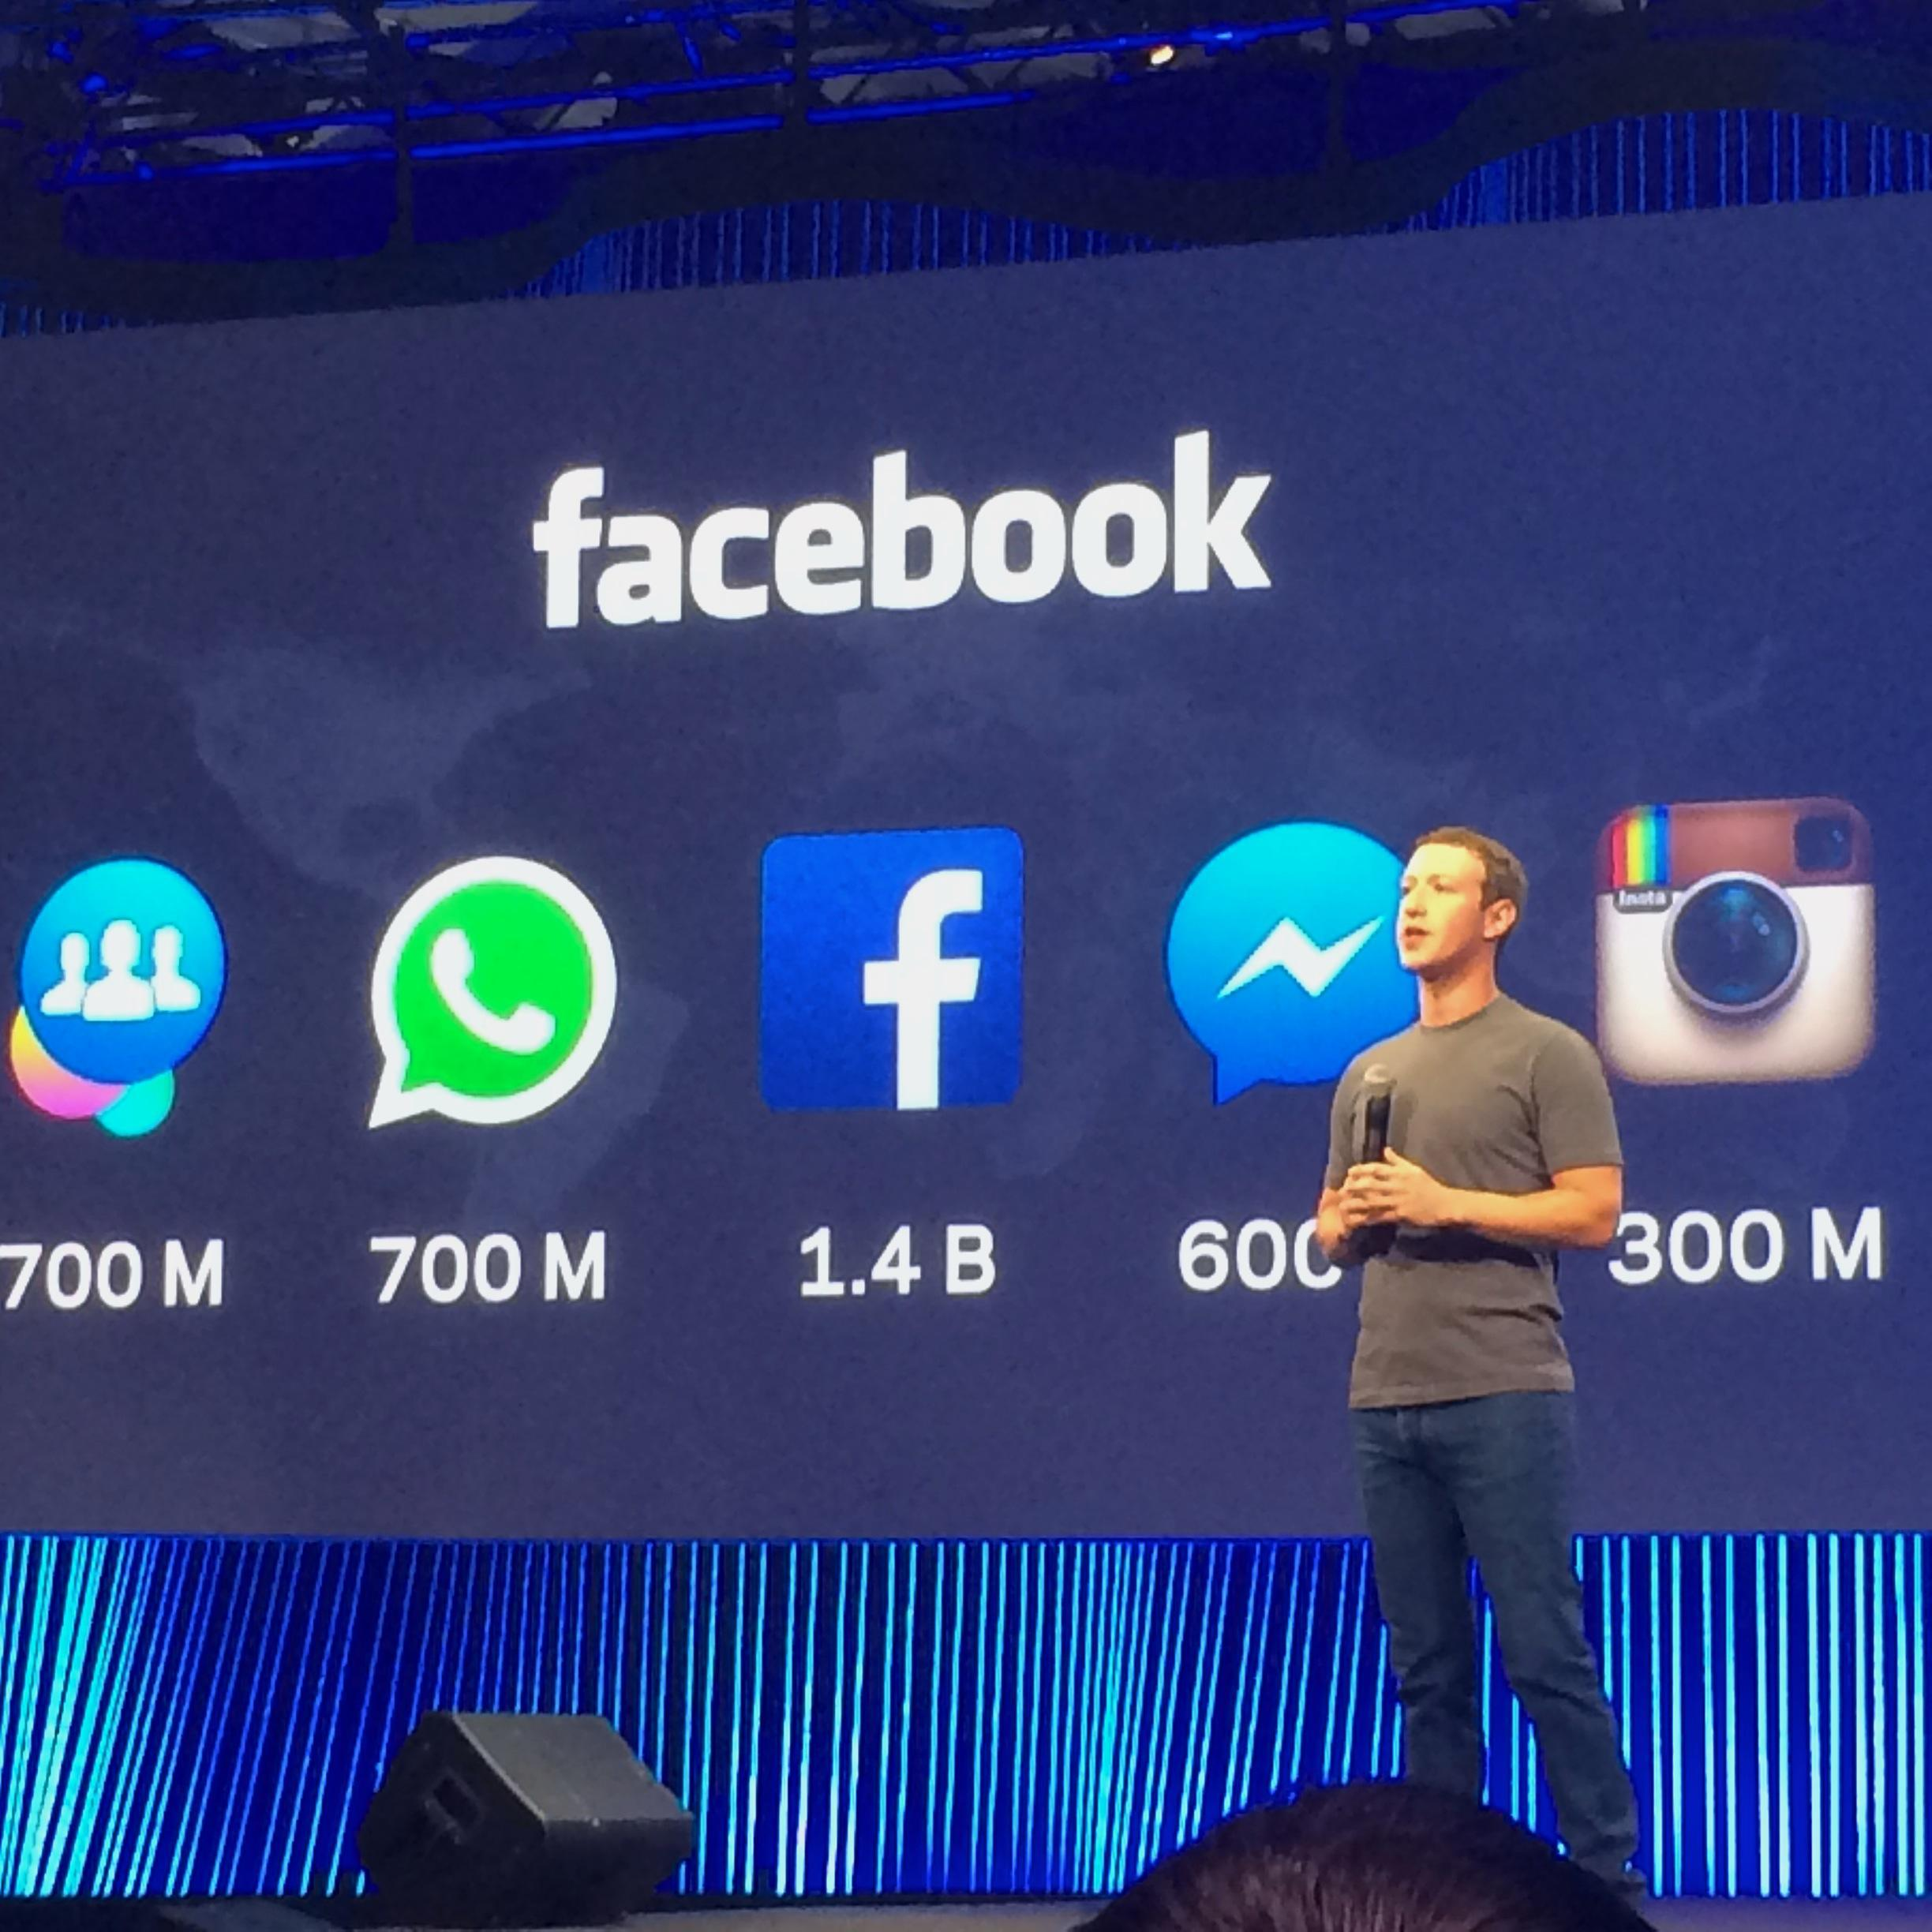 Facebook aims to host full news stories, will let publishers keep ad revenue, says report